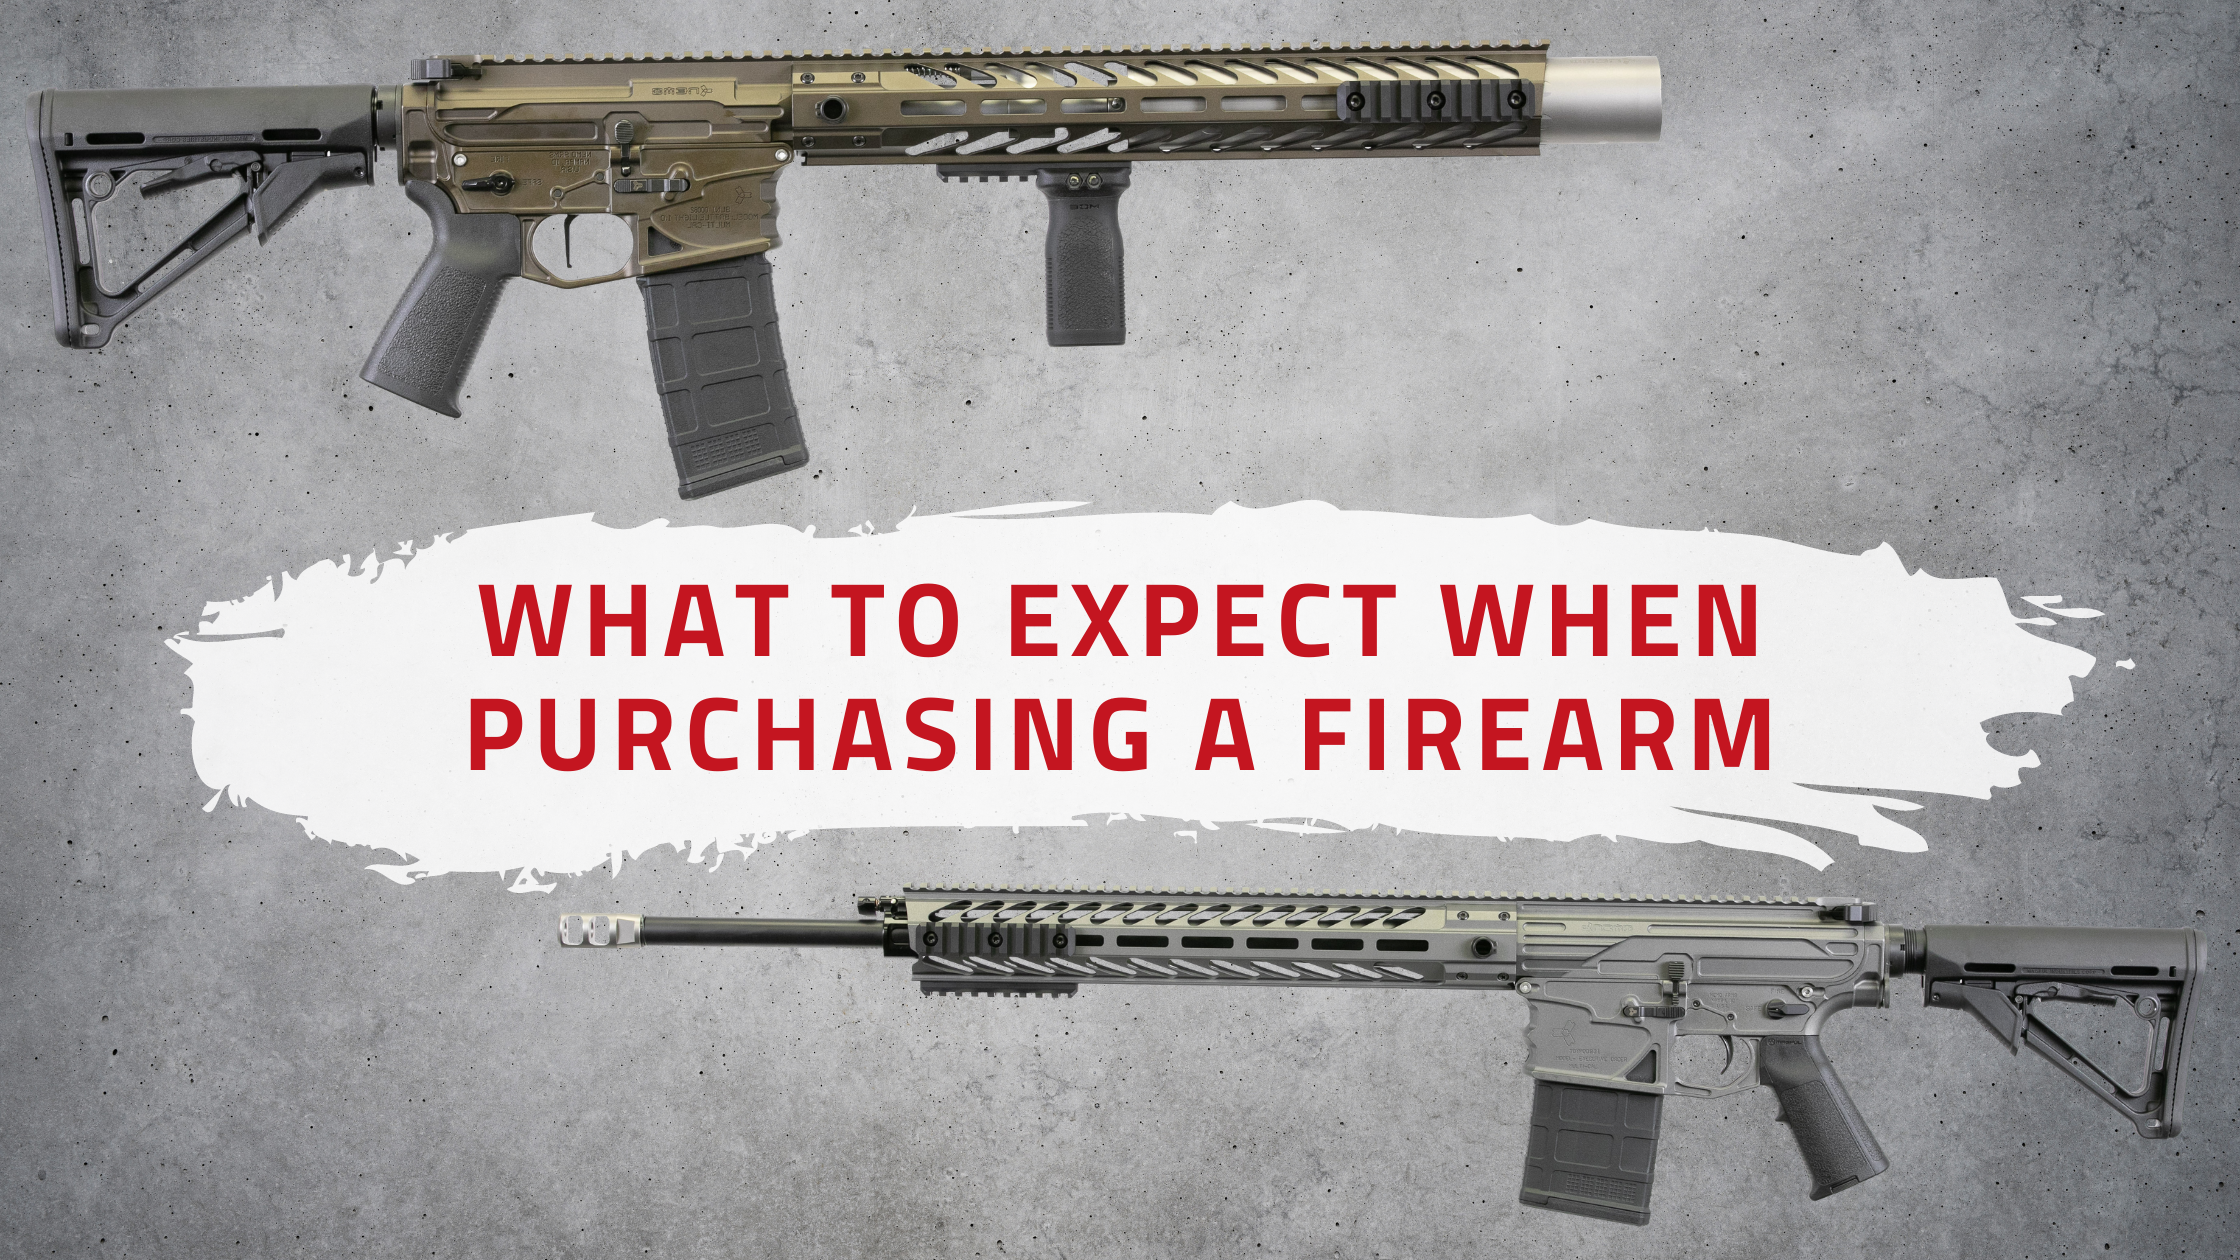 What to Expect When Purchasing a Firearm